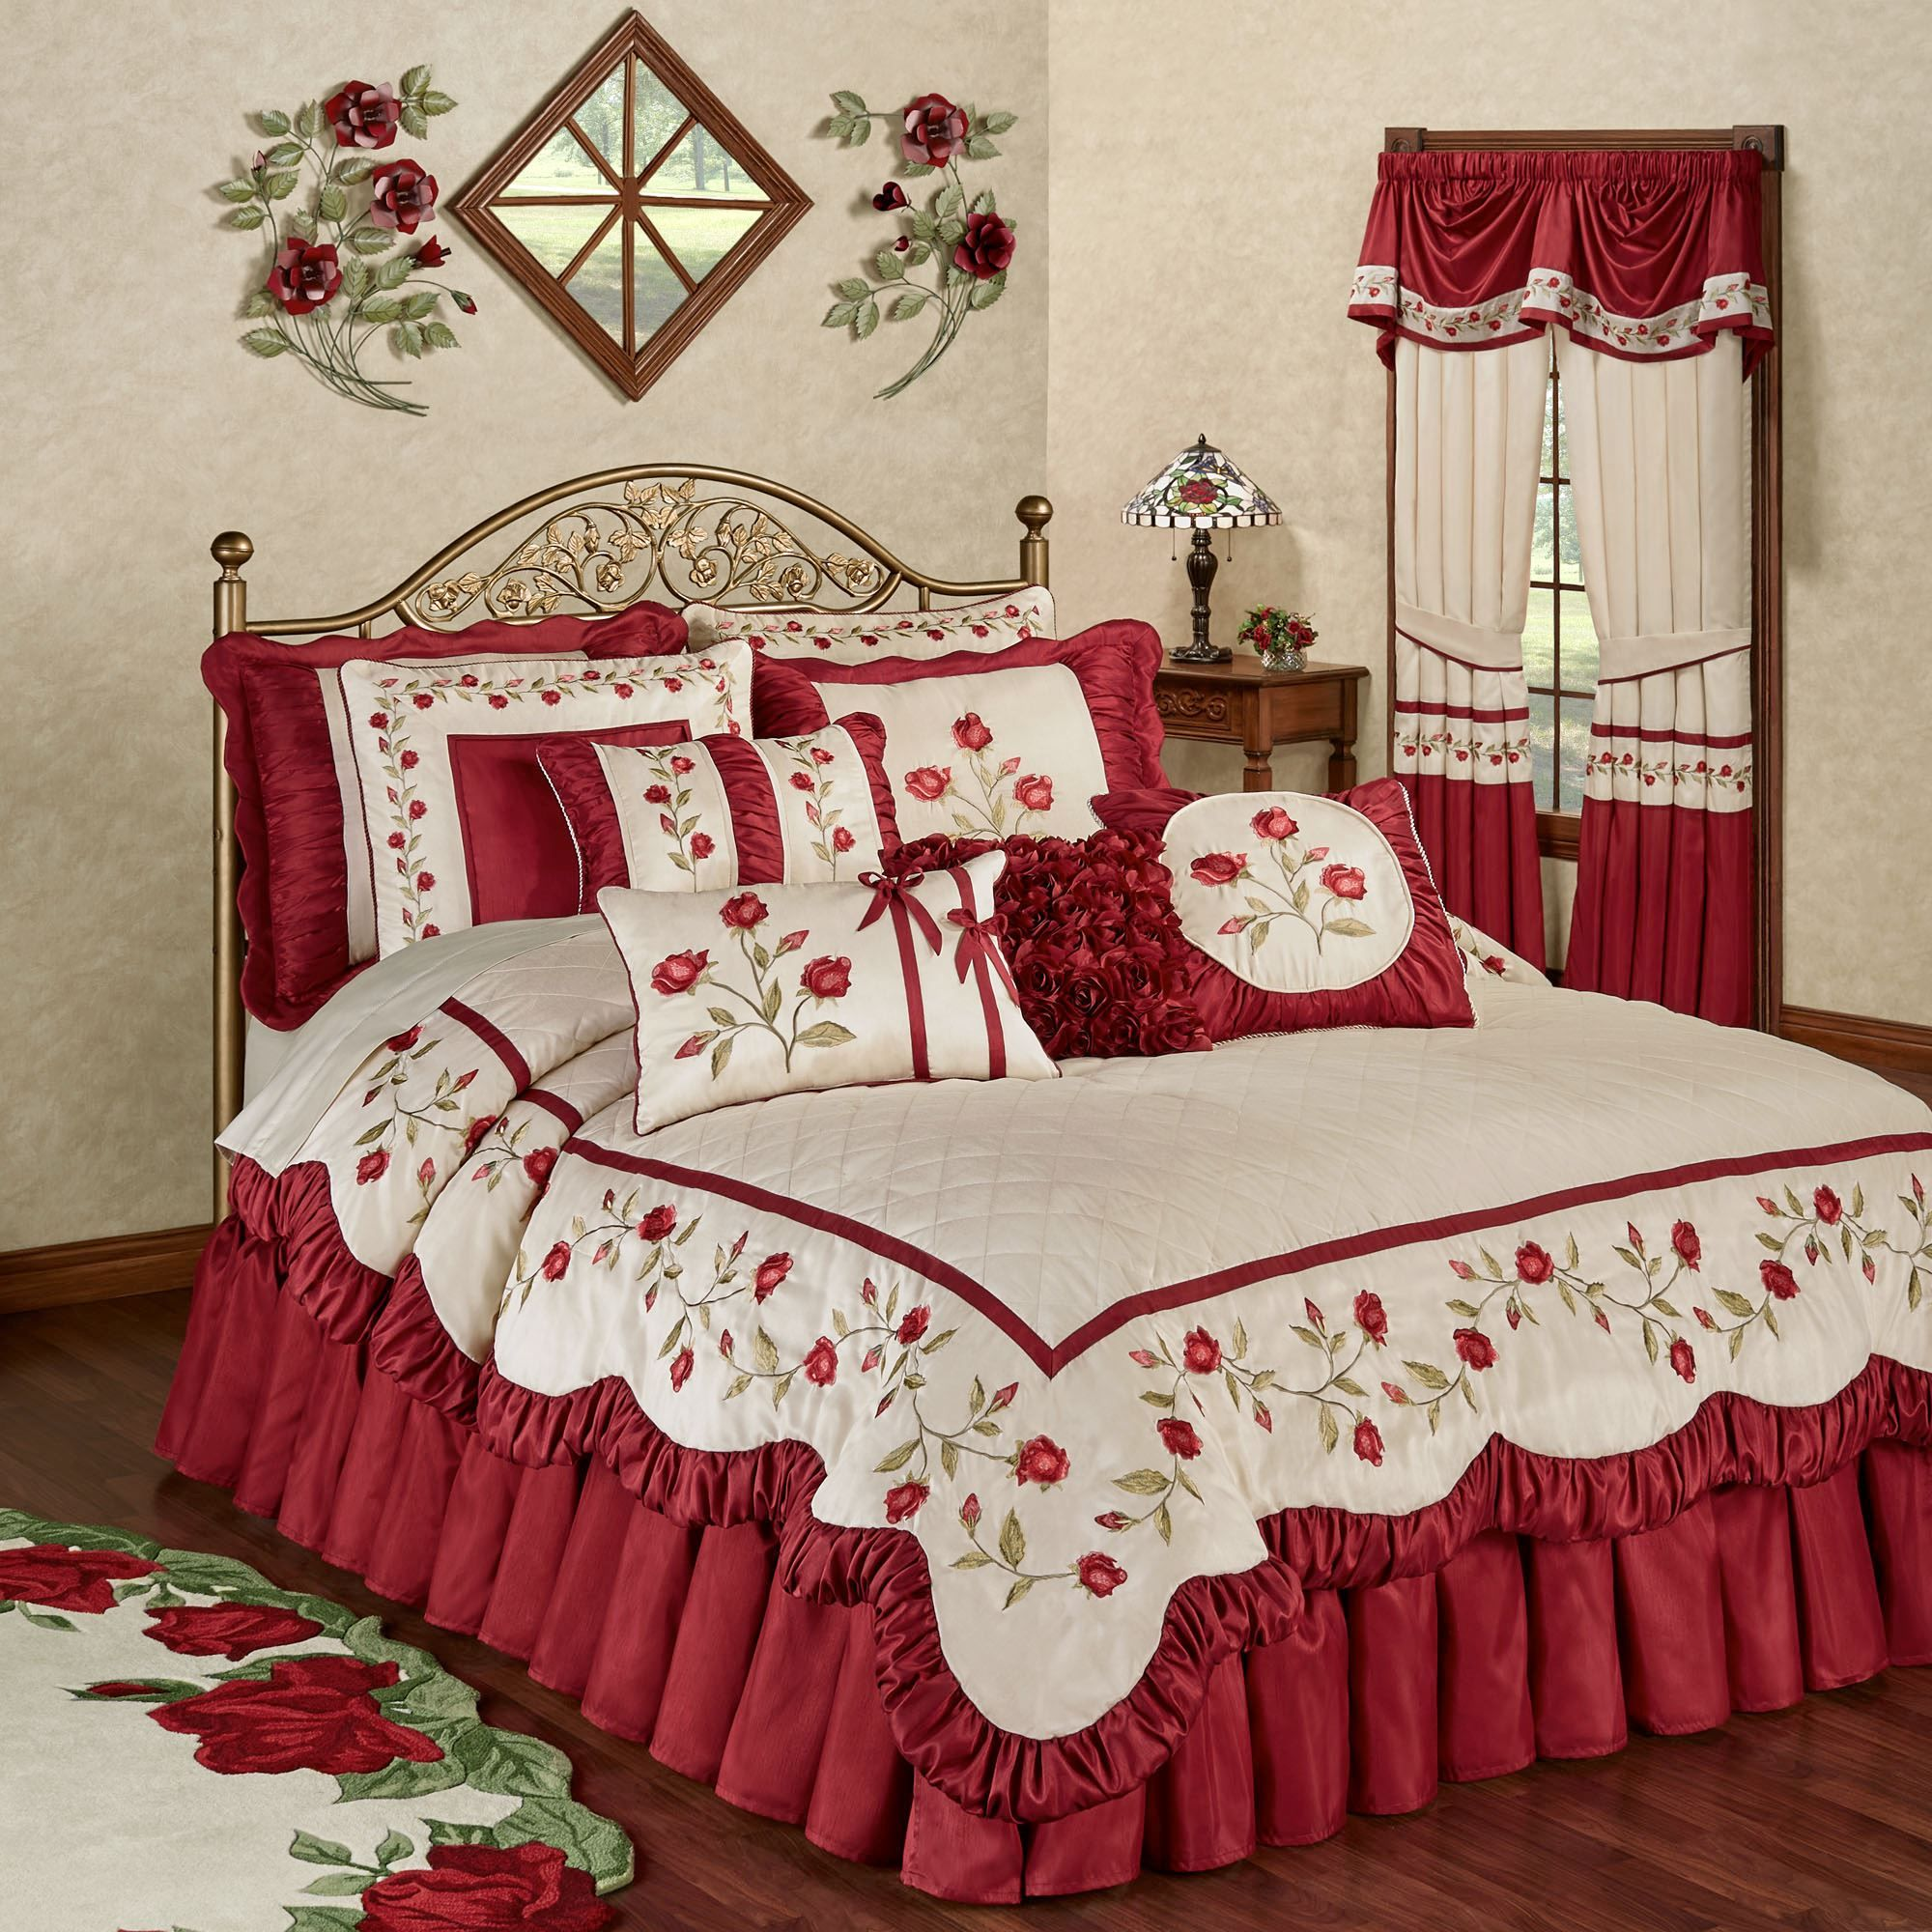 Briar Rose Dark Red Floral Romantic Comforter Bedding